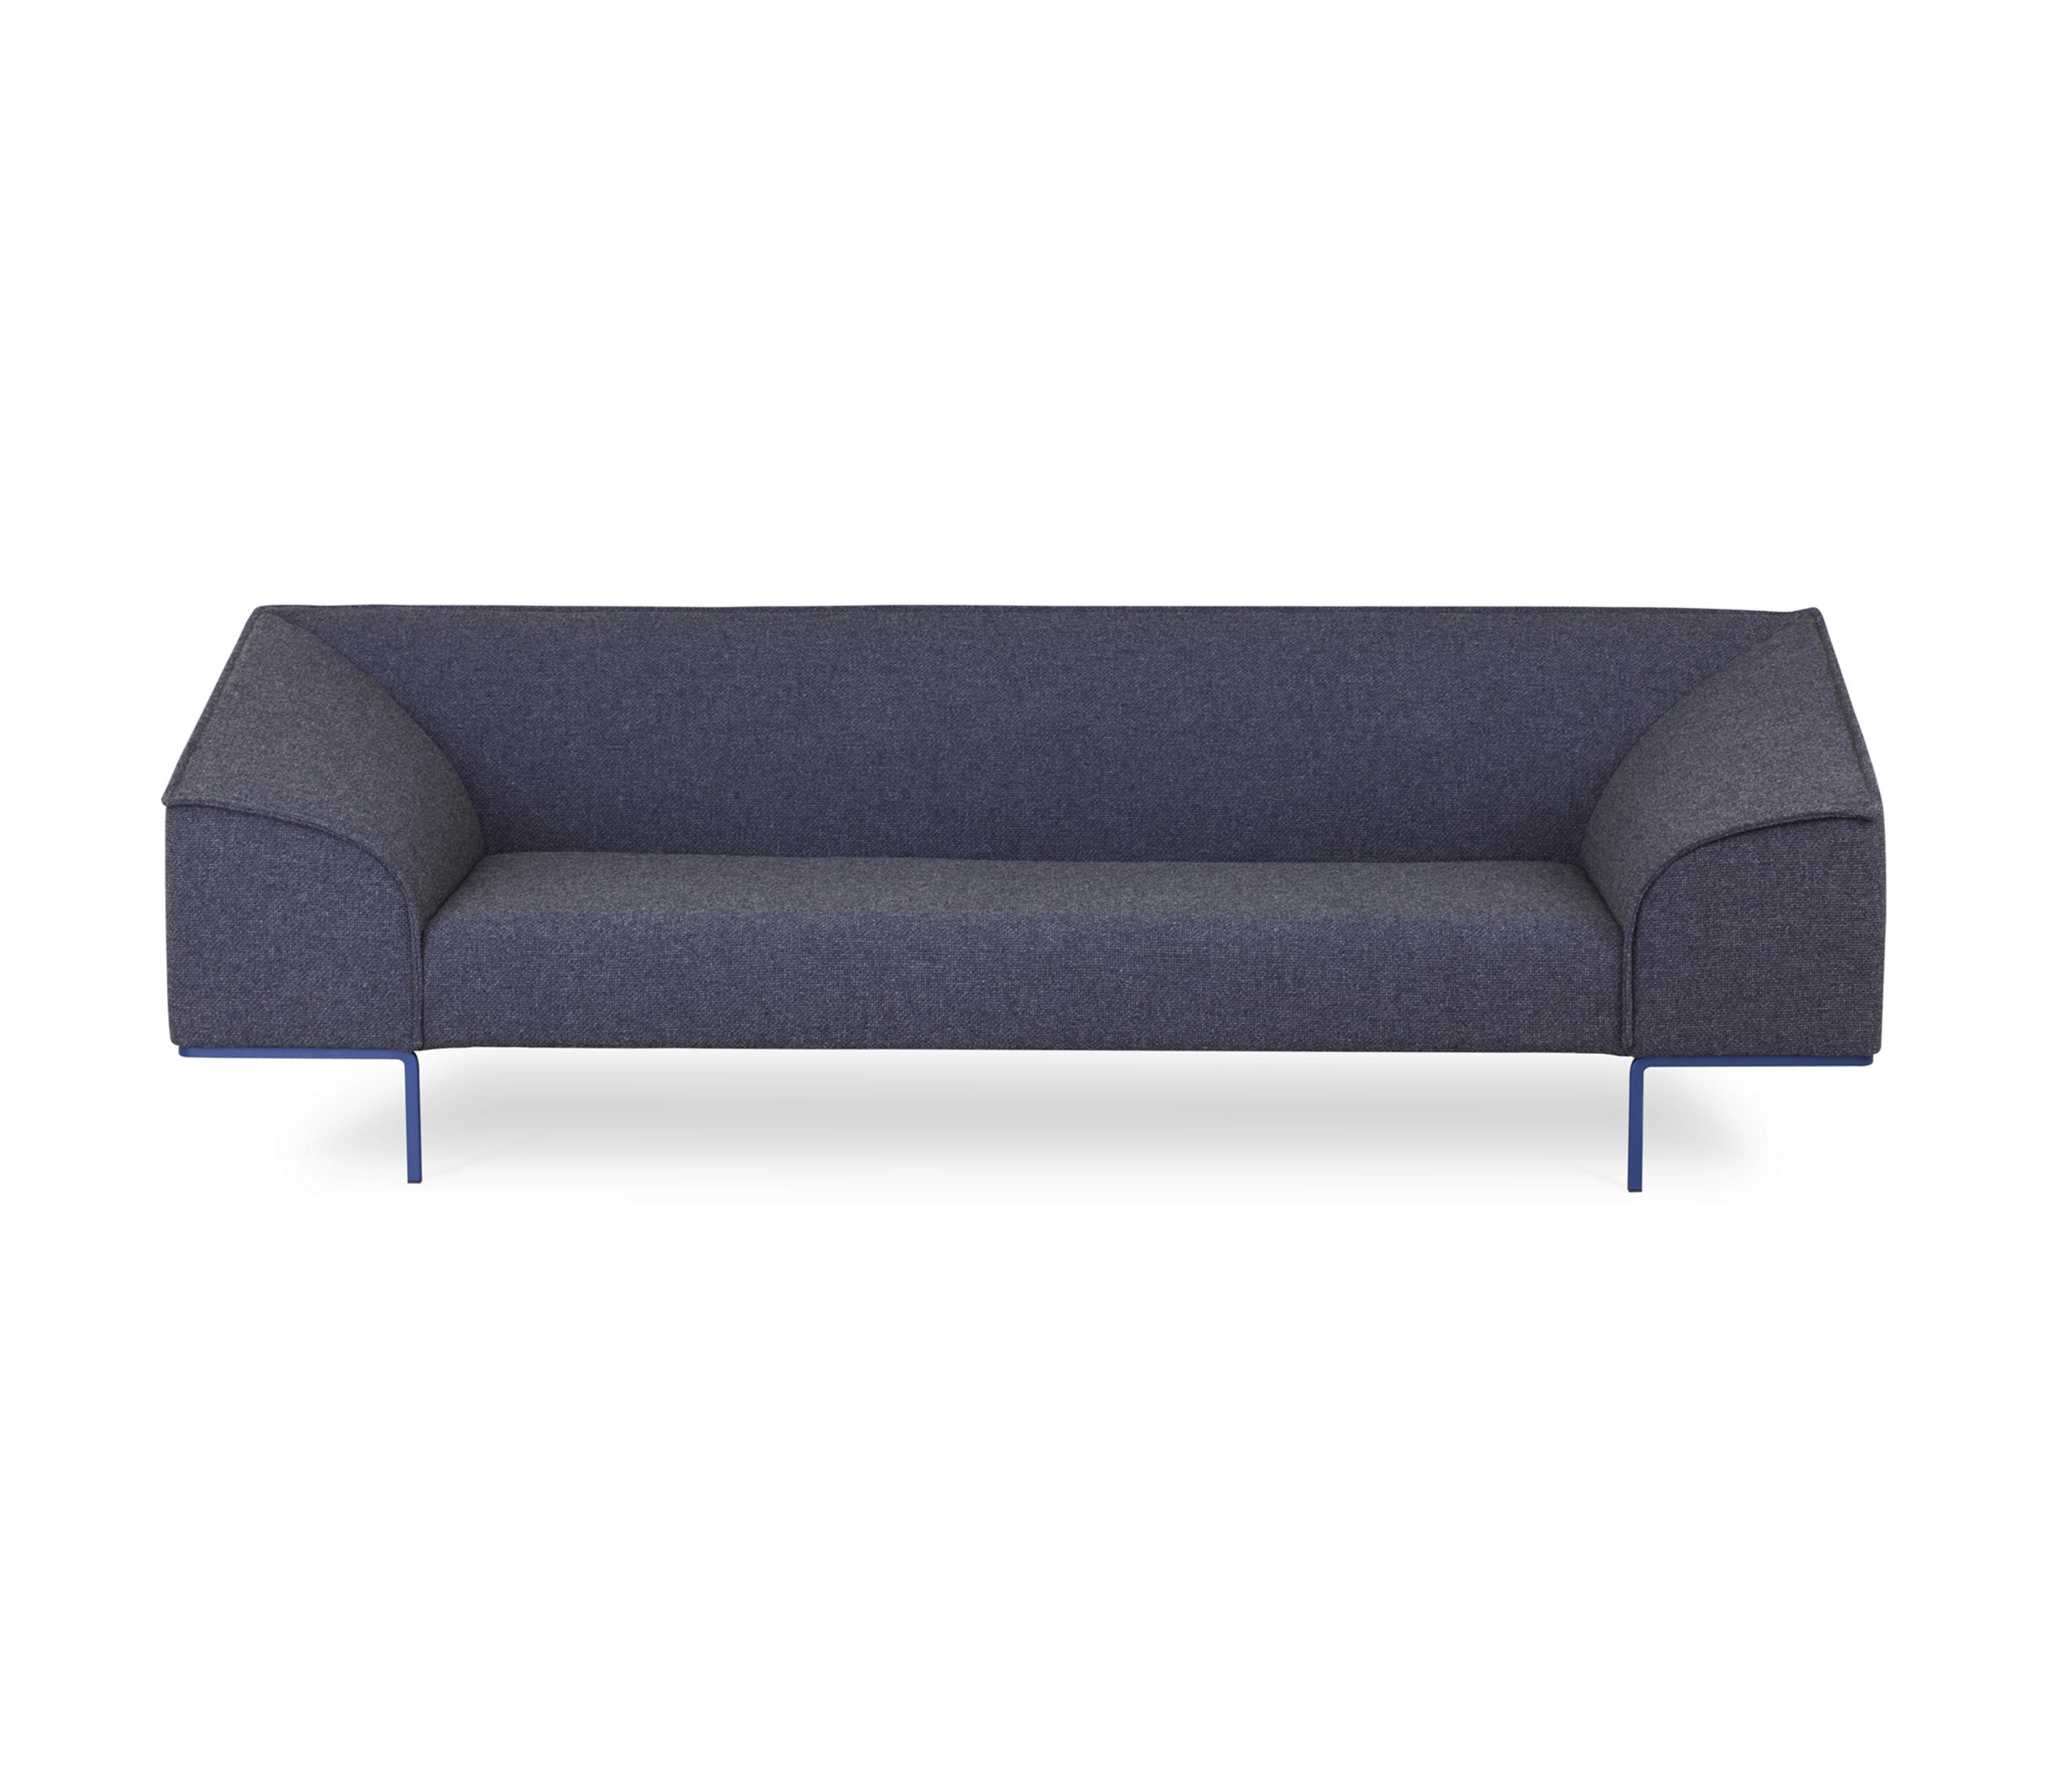 Seam sofa divani lounge prostoria architonic for Prostoria divani